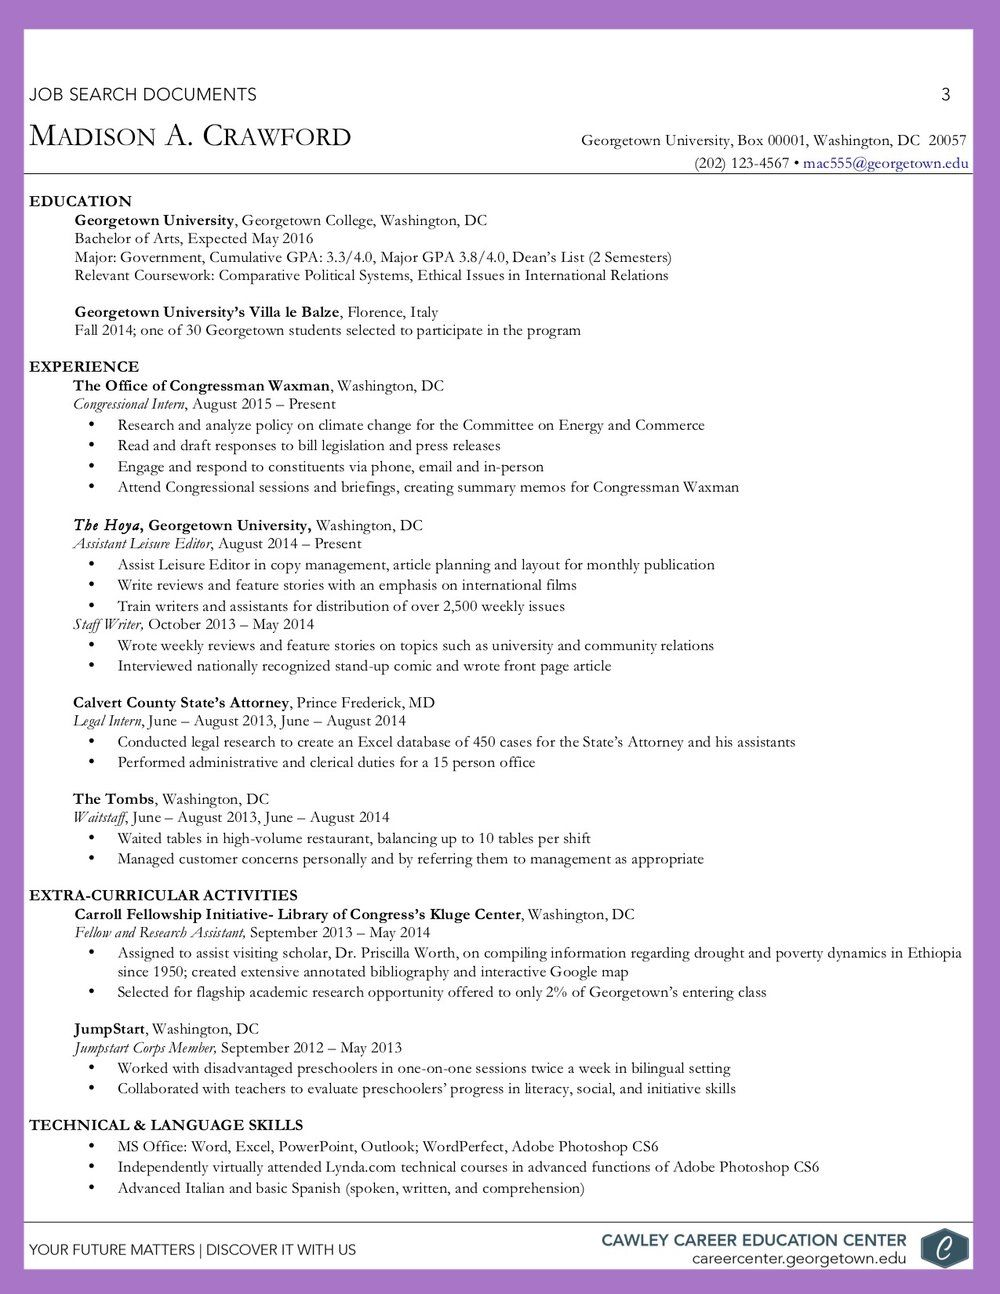 Management Resume Sample in 2020 Good resume examples